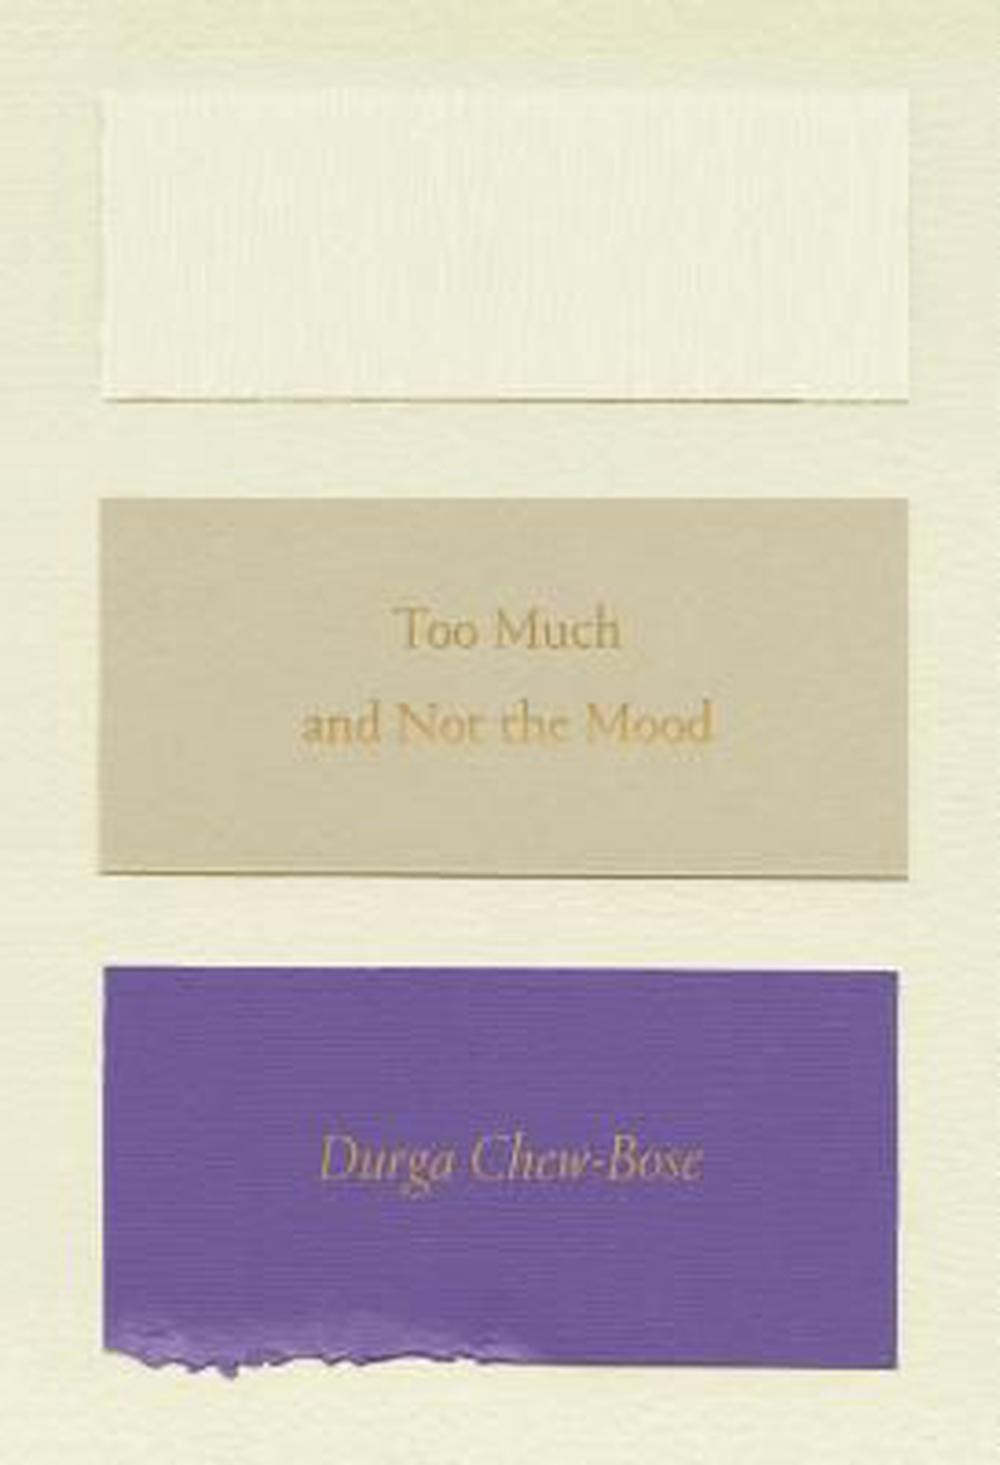 Too Much and Not the Mood: Essays by Durga Chew-Bose, ISBN: 9780374535957